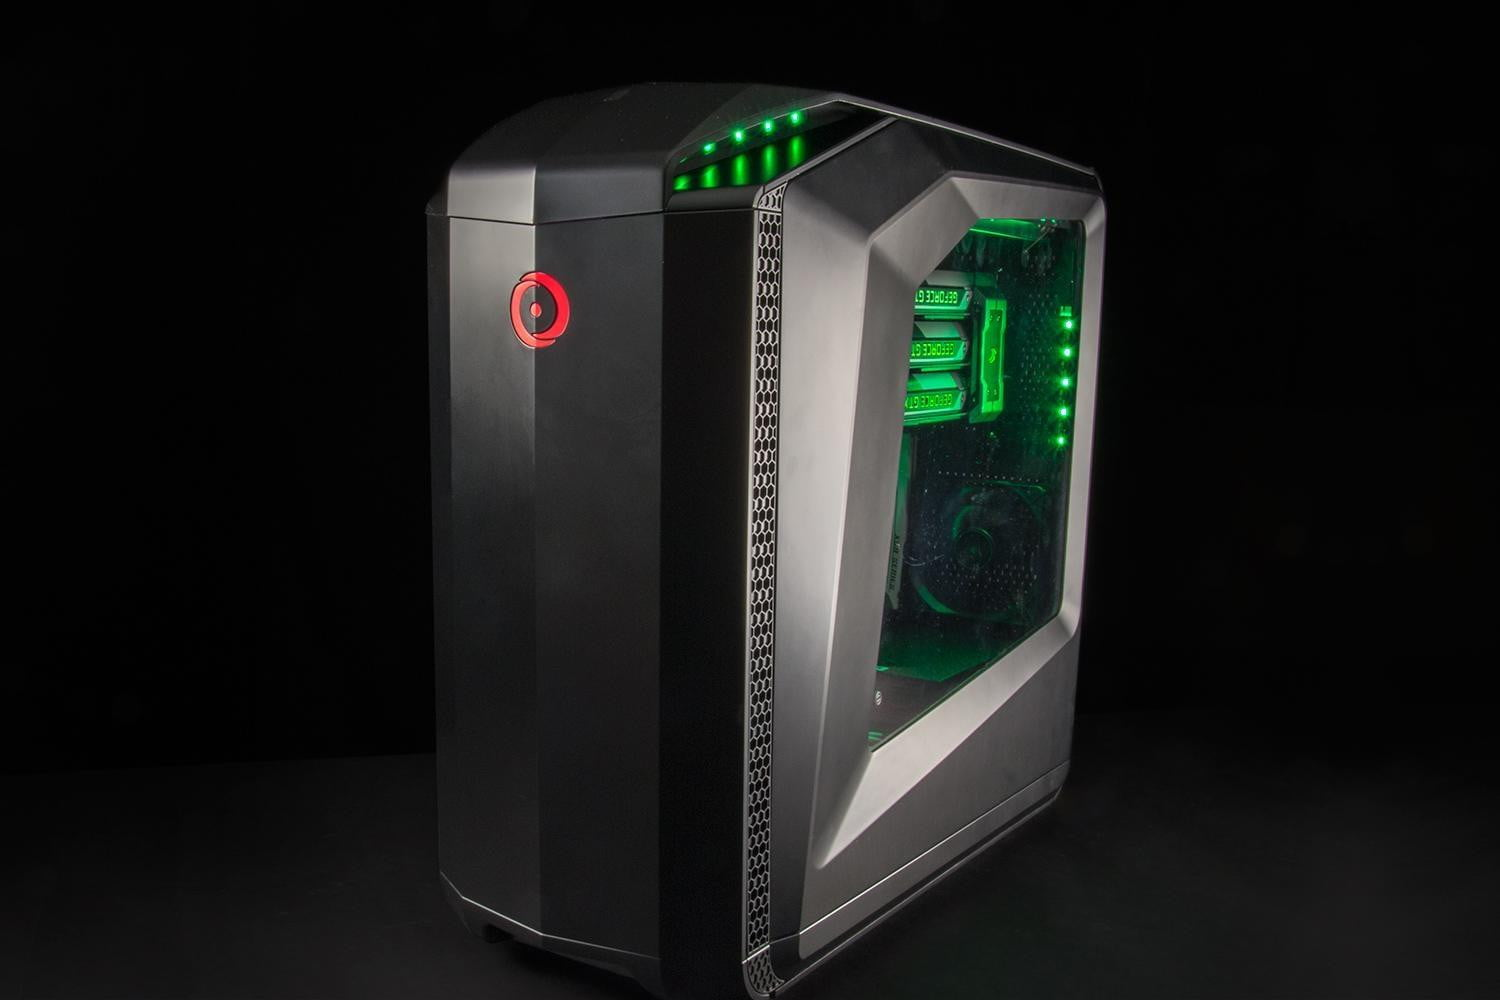 What is a good Desktop for me?